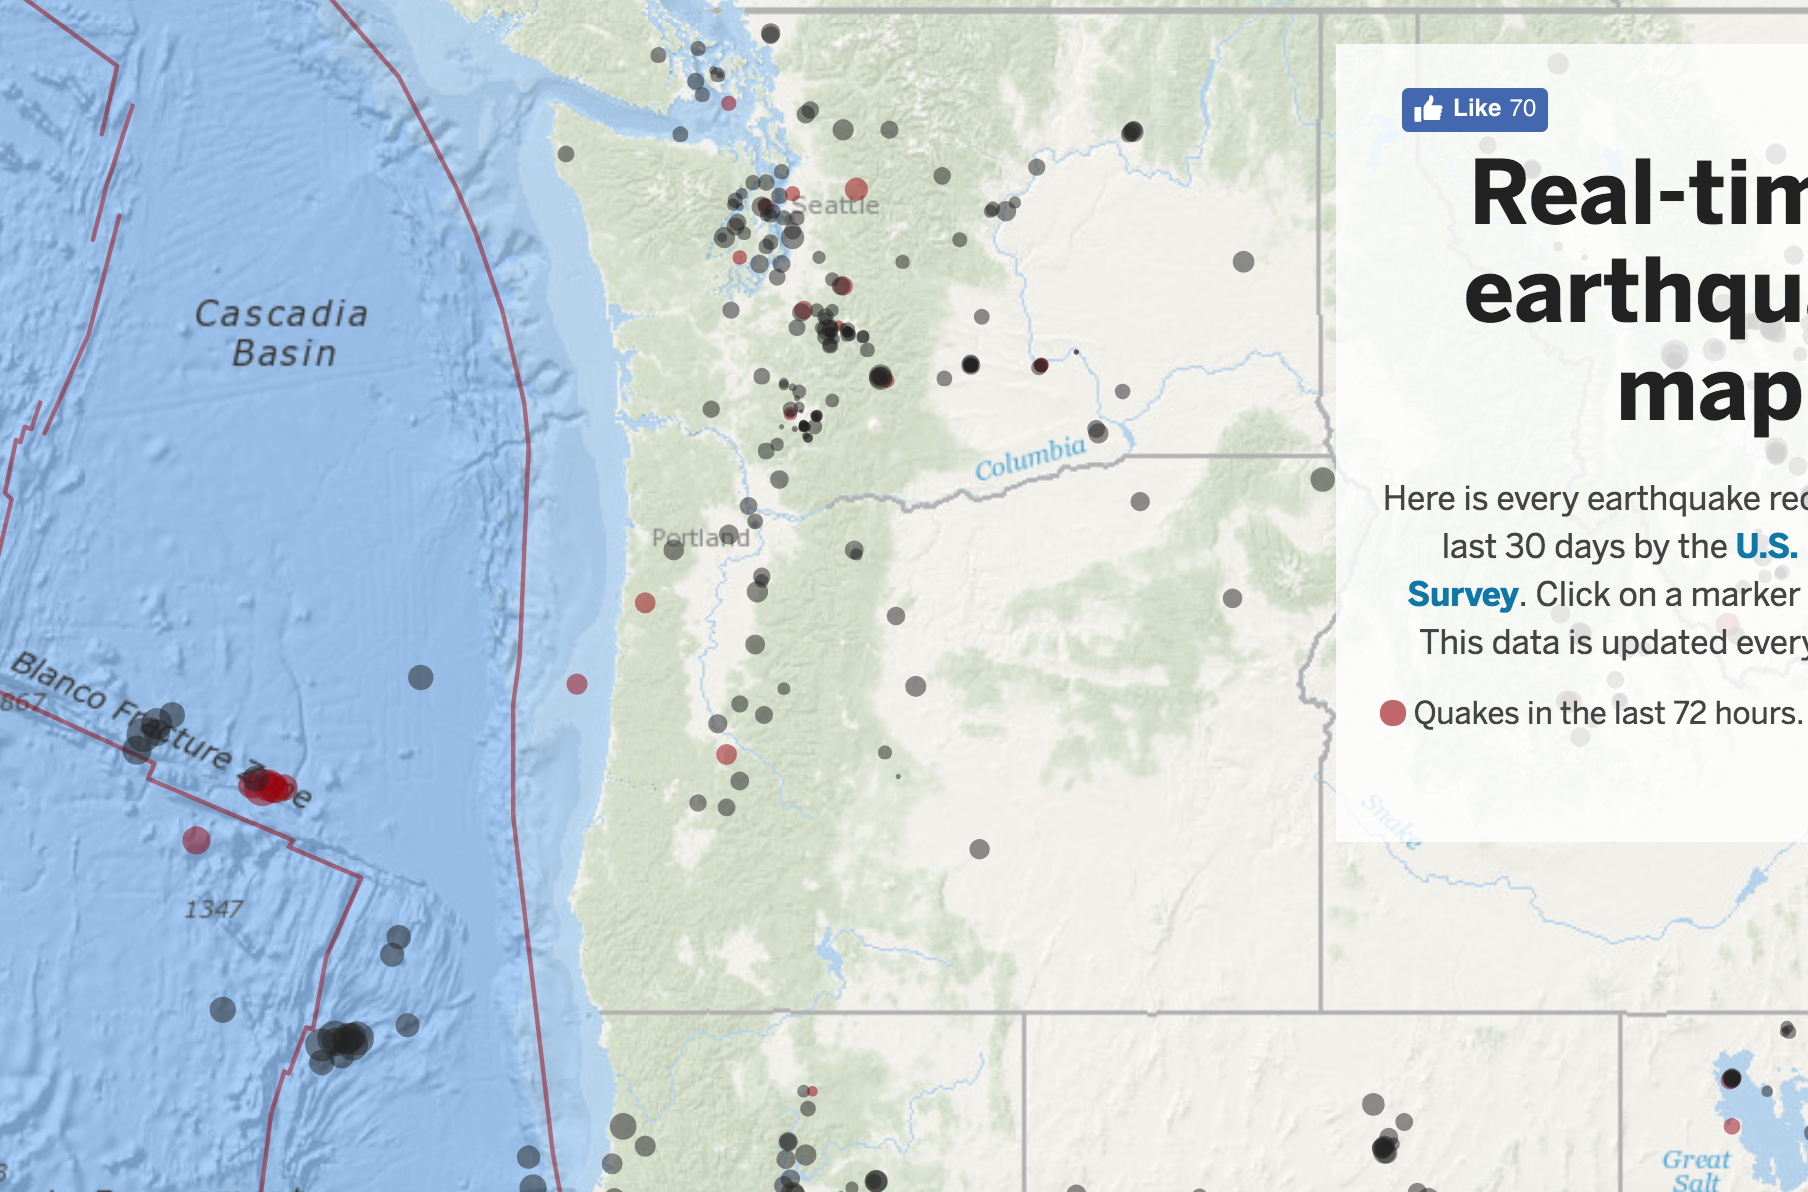 Real Time Earthquake Map For Oregon And West Coast The Great